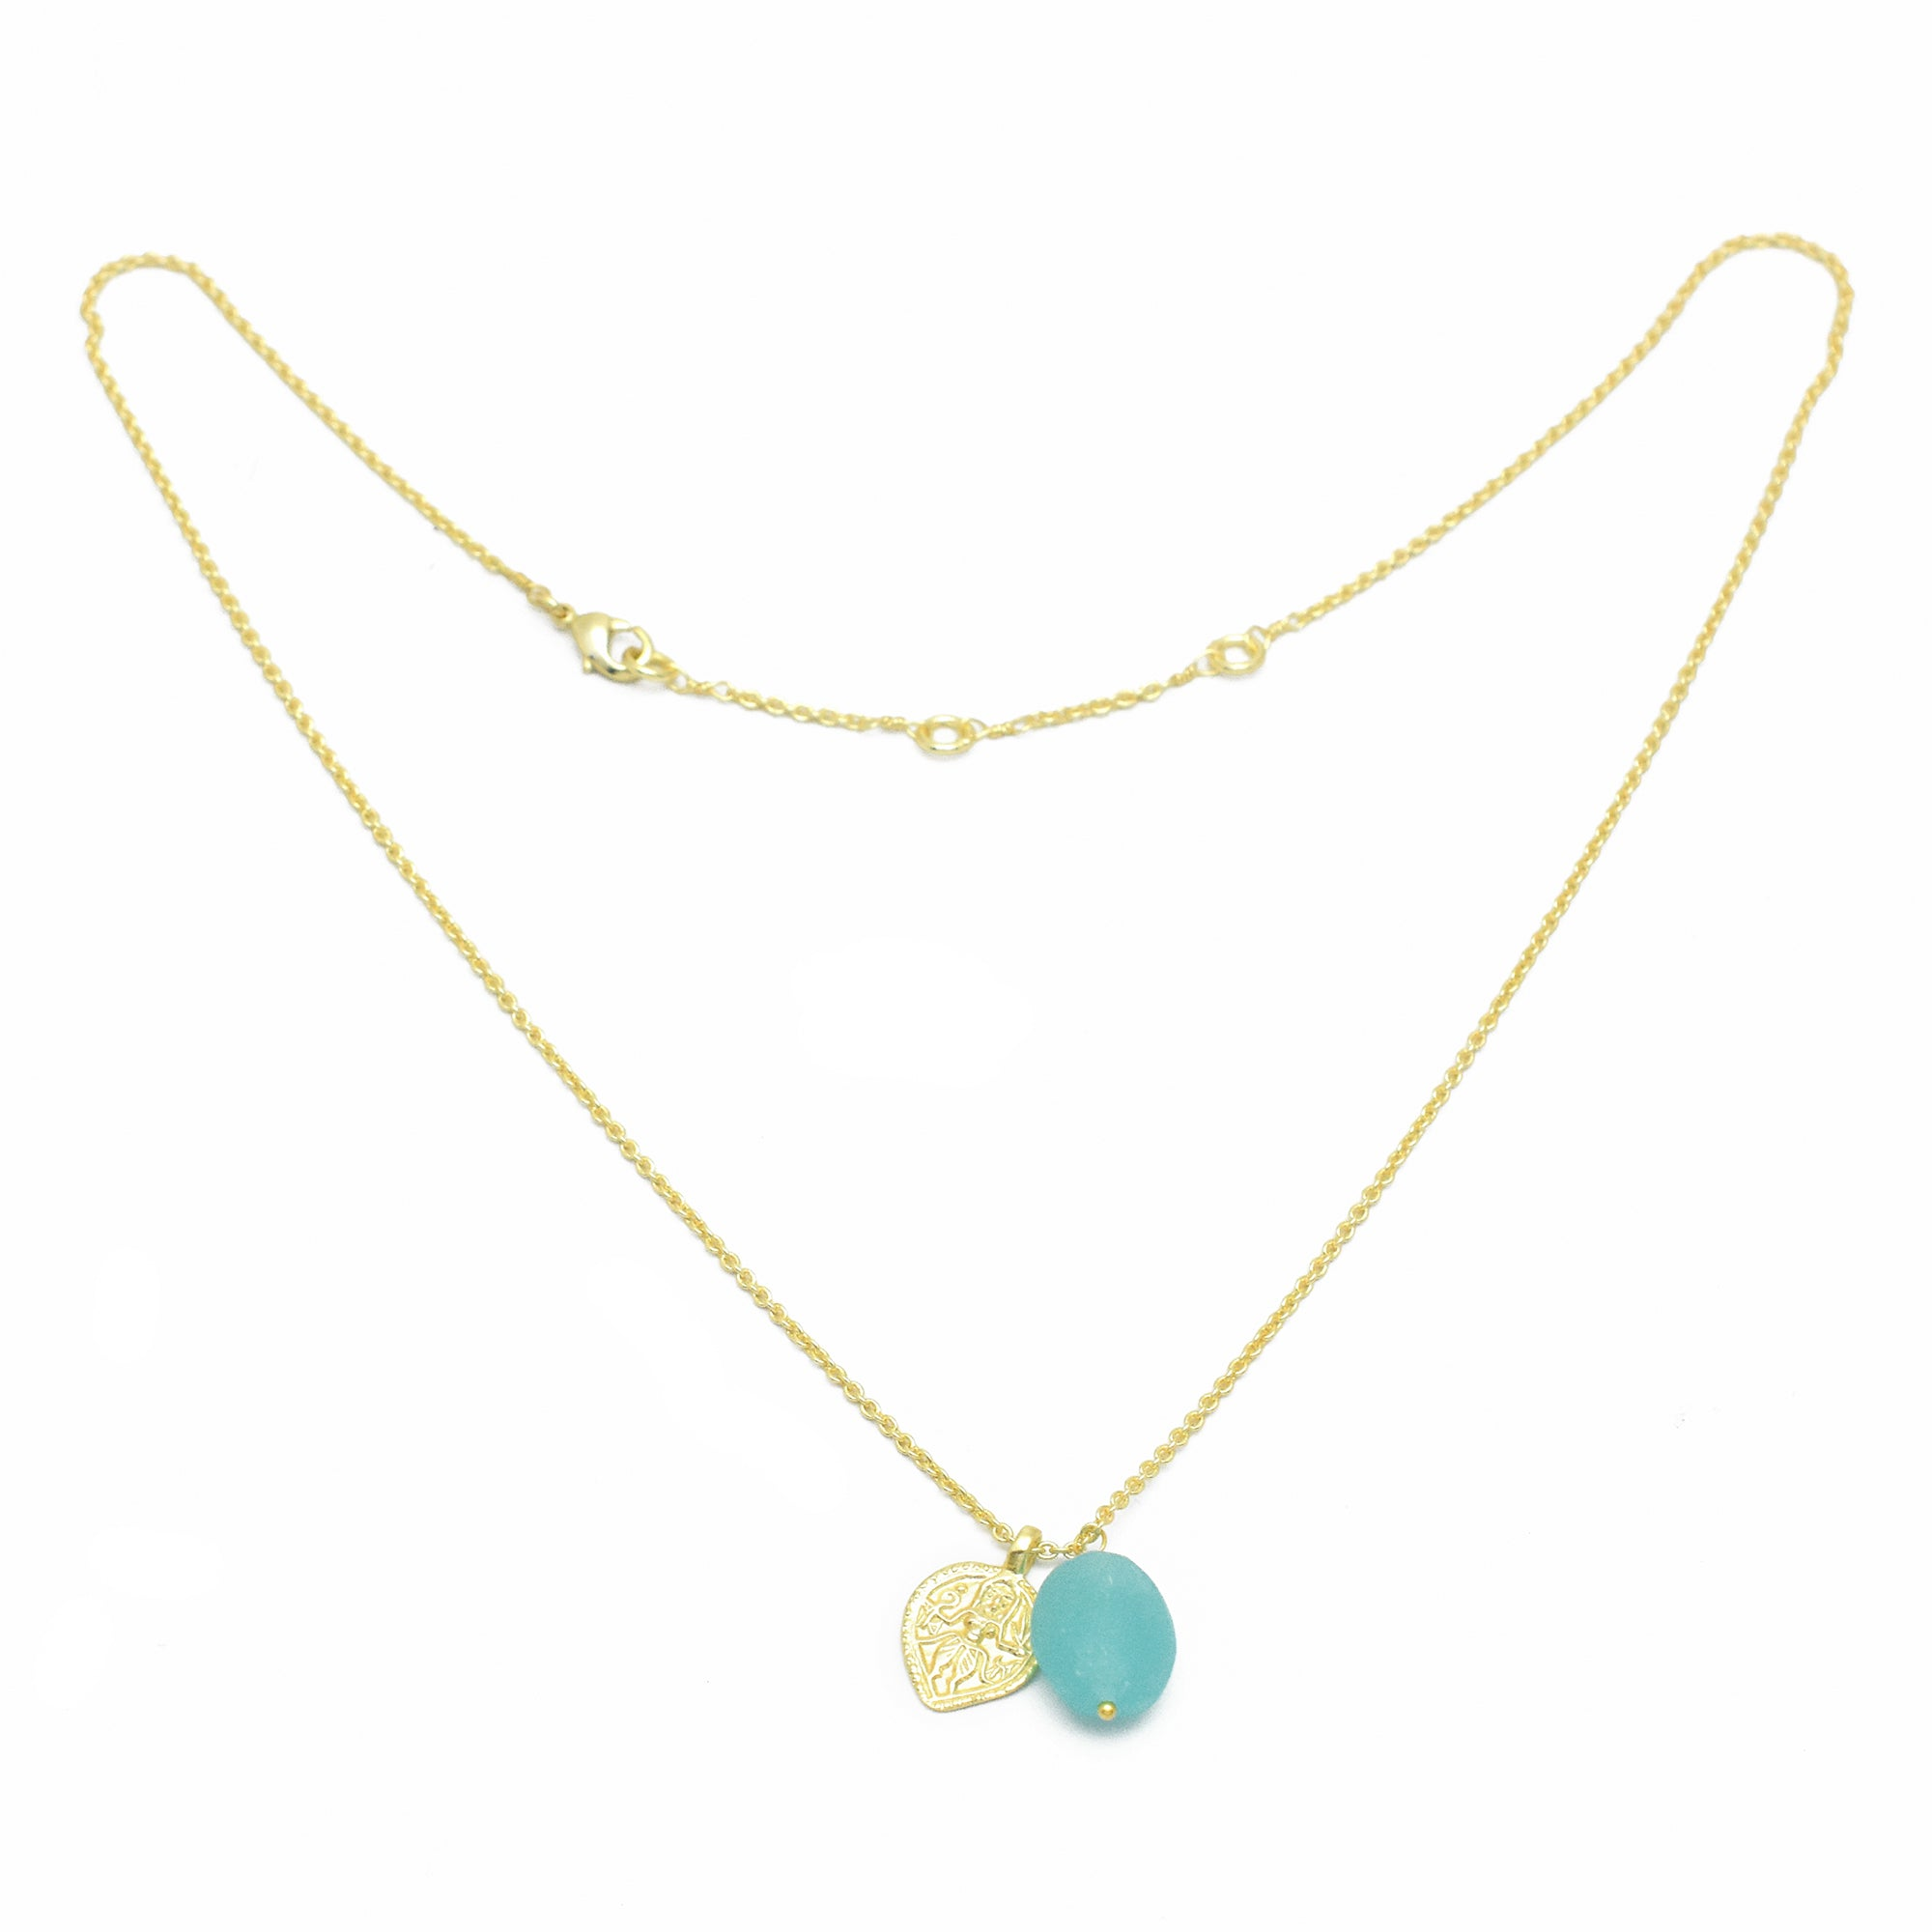 "Aqua Chalcedony Durga Charm Double Pendant Necklace, 18""+2"" - Gold Plated"